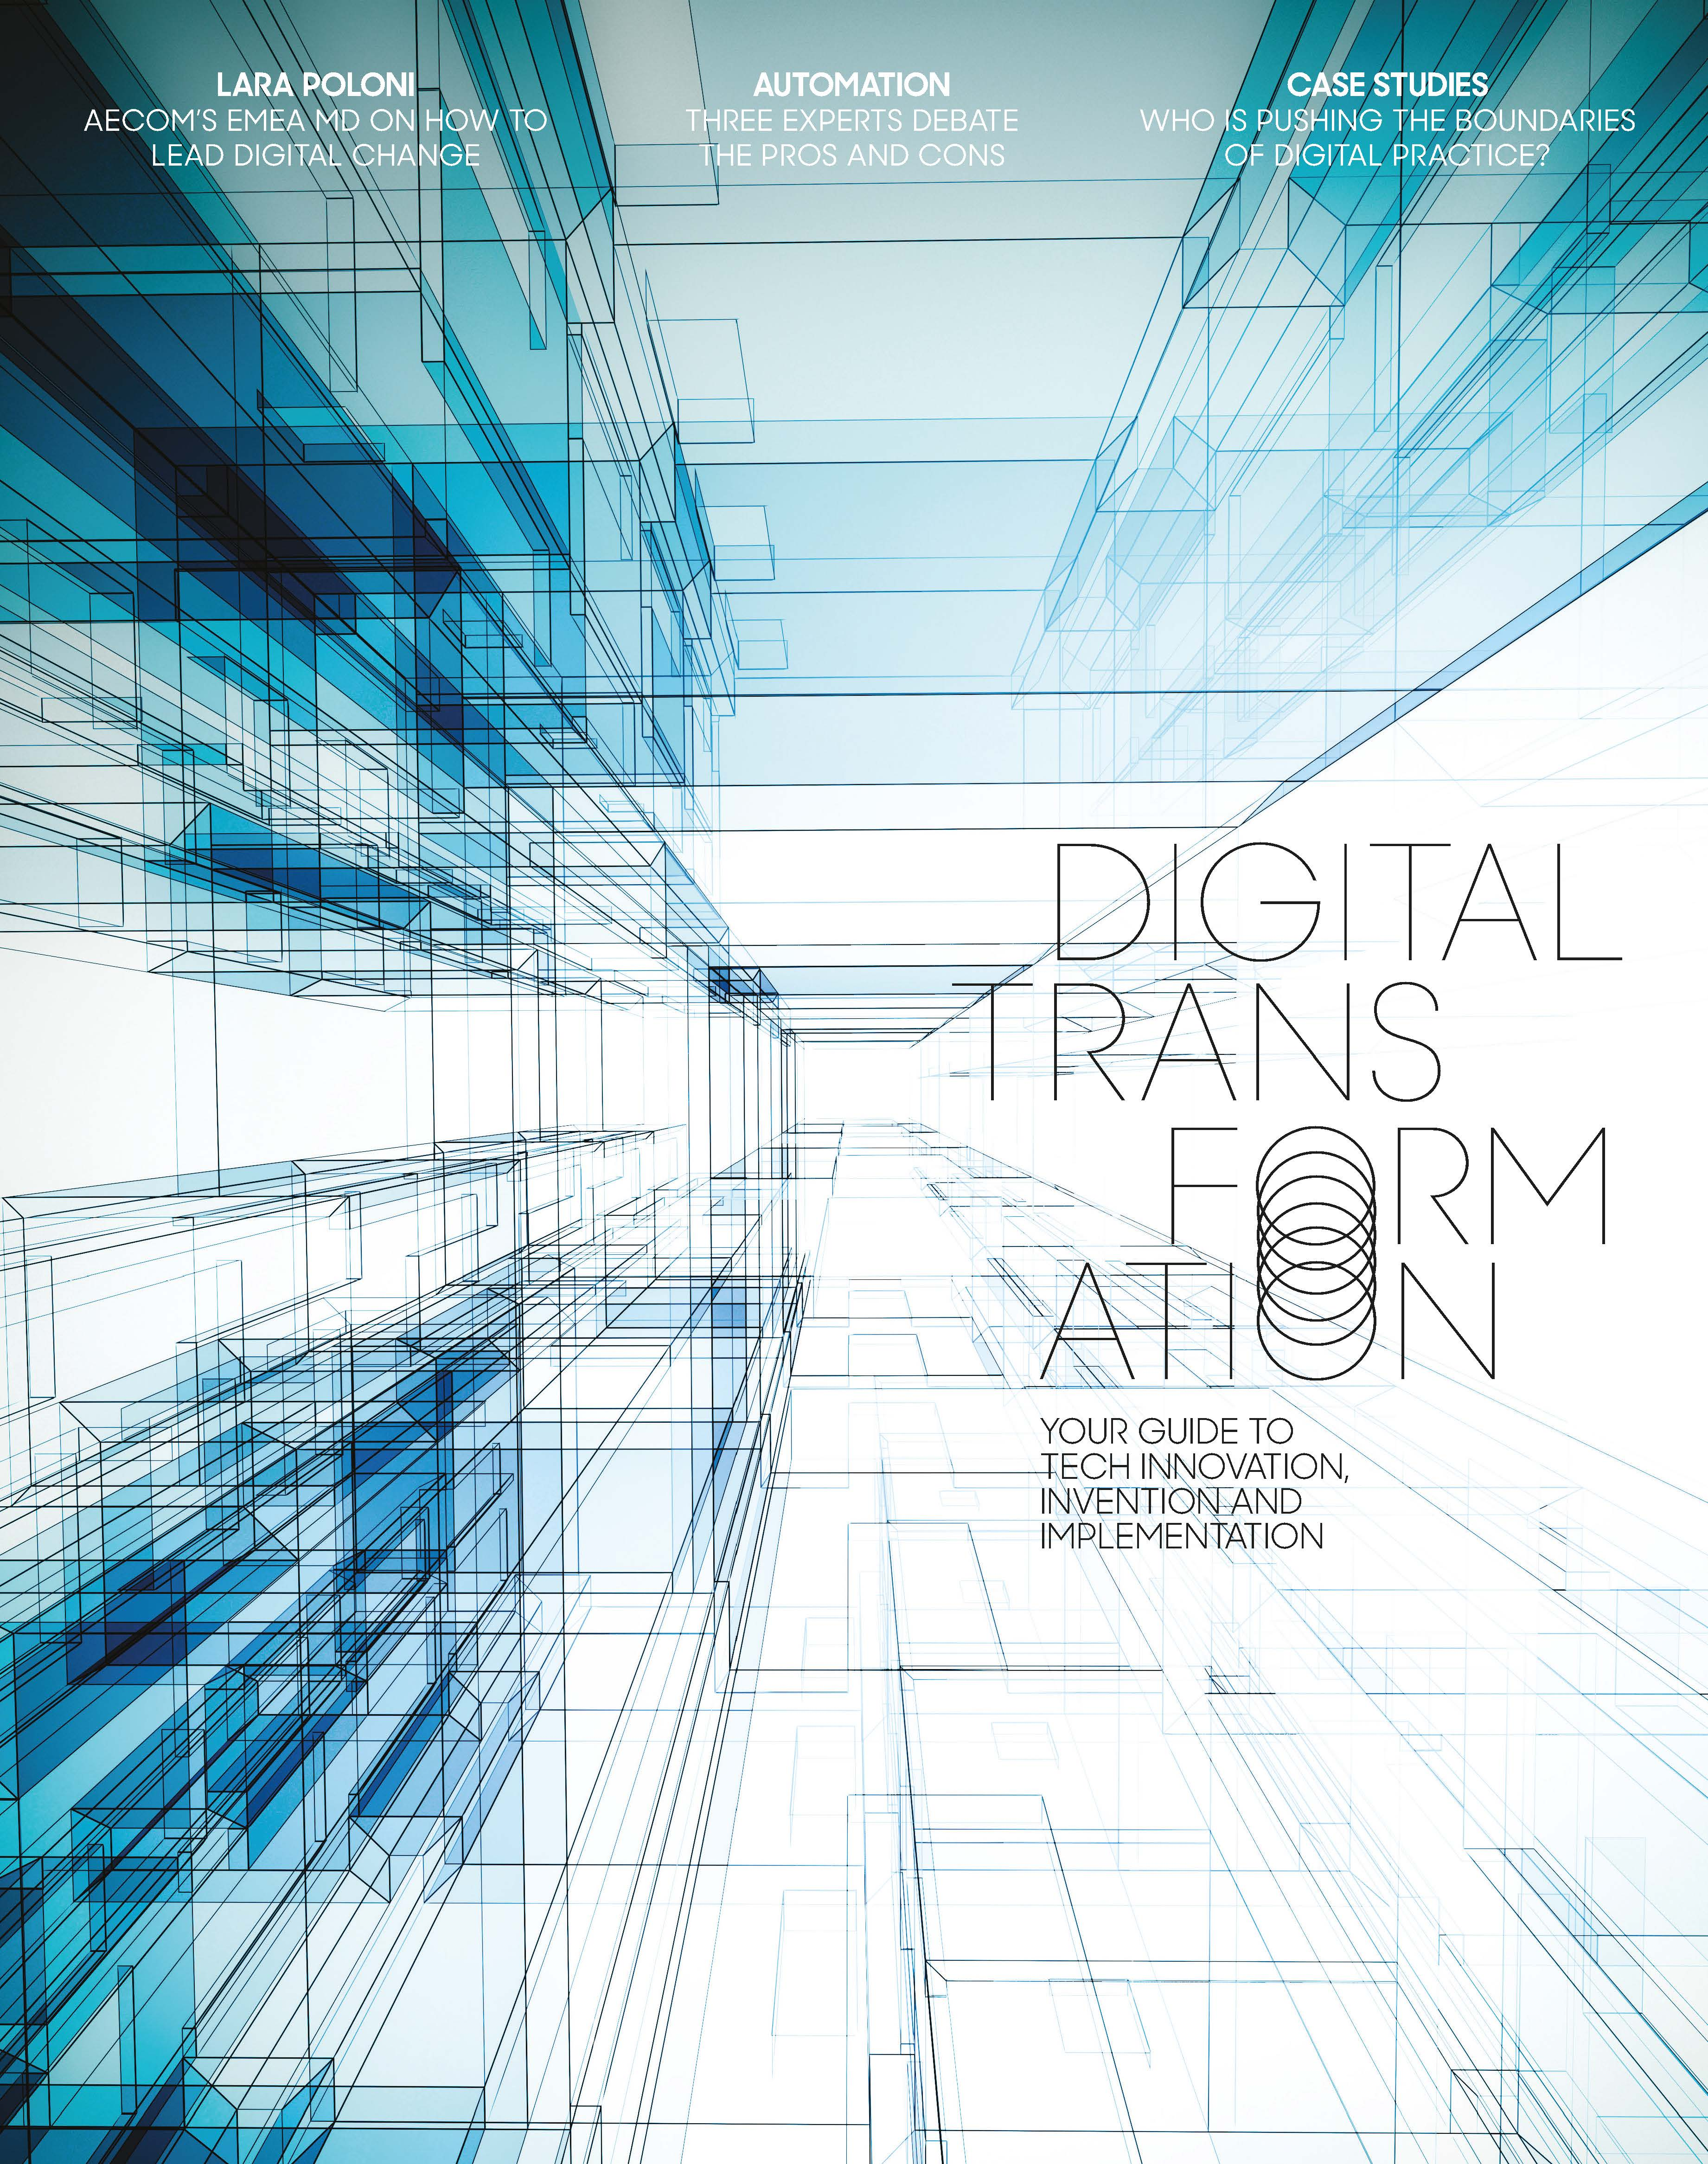 Digital transformation: Your guide to tech innovation, invention and implementation